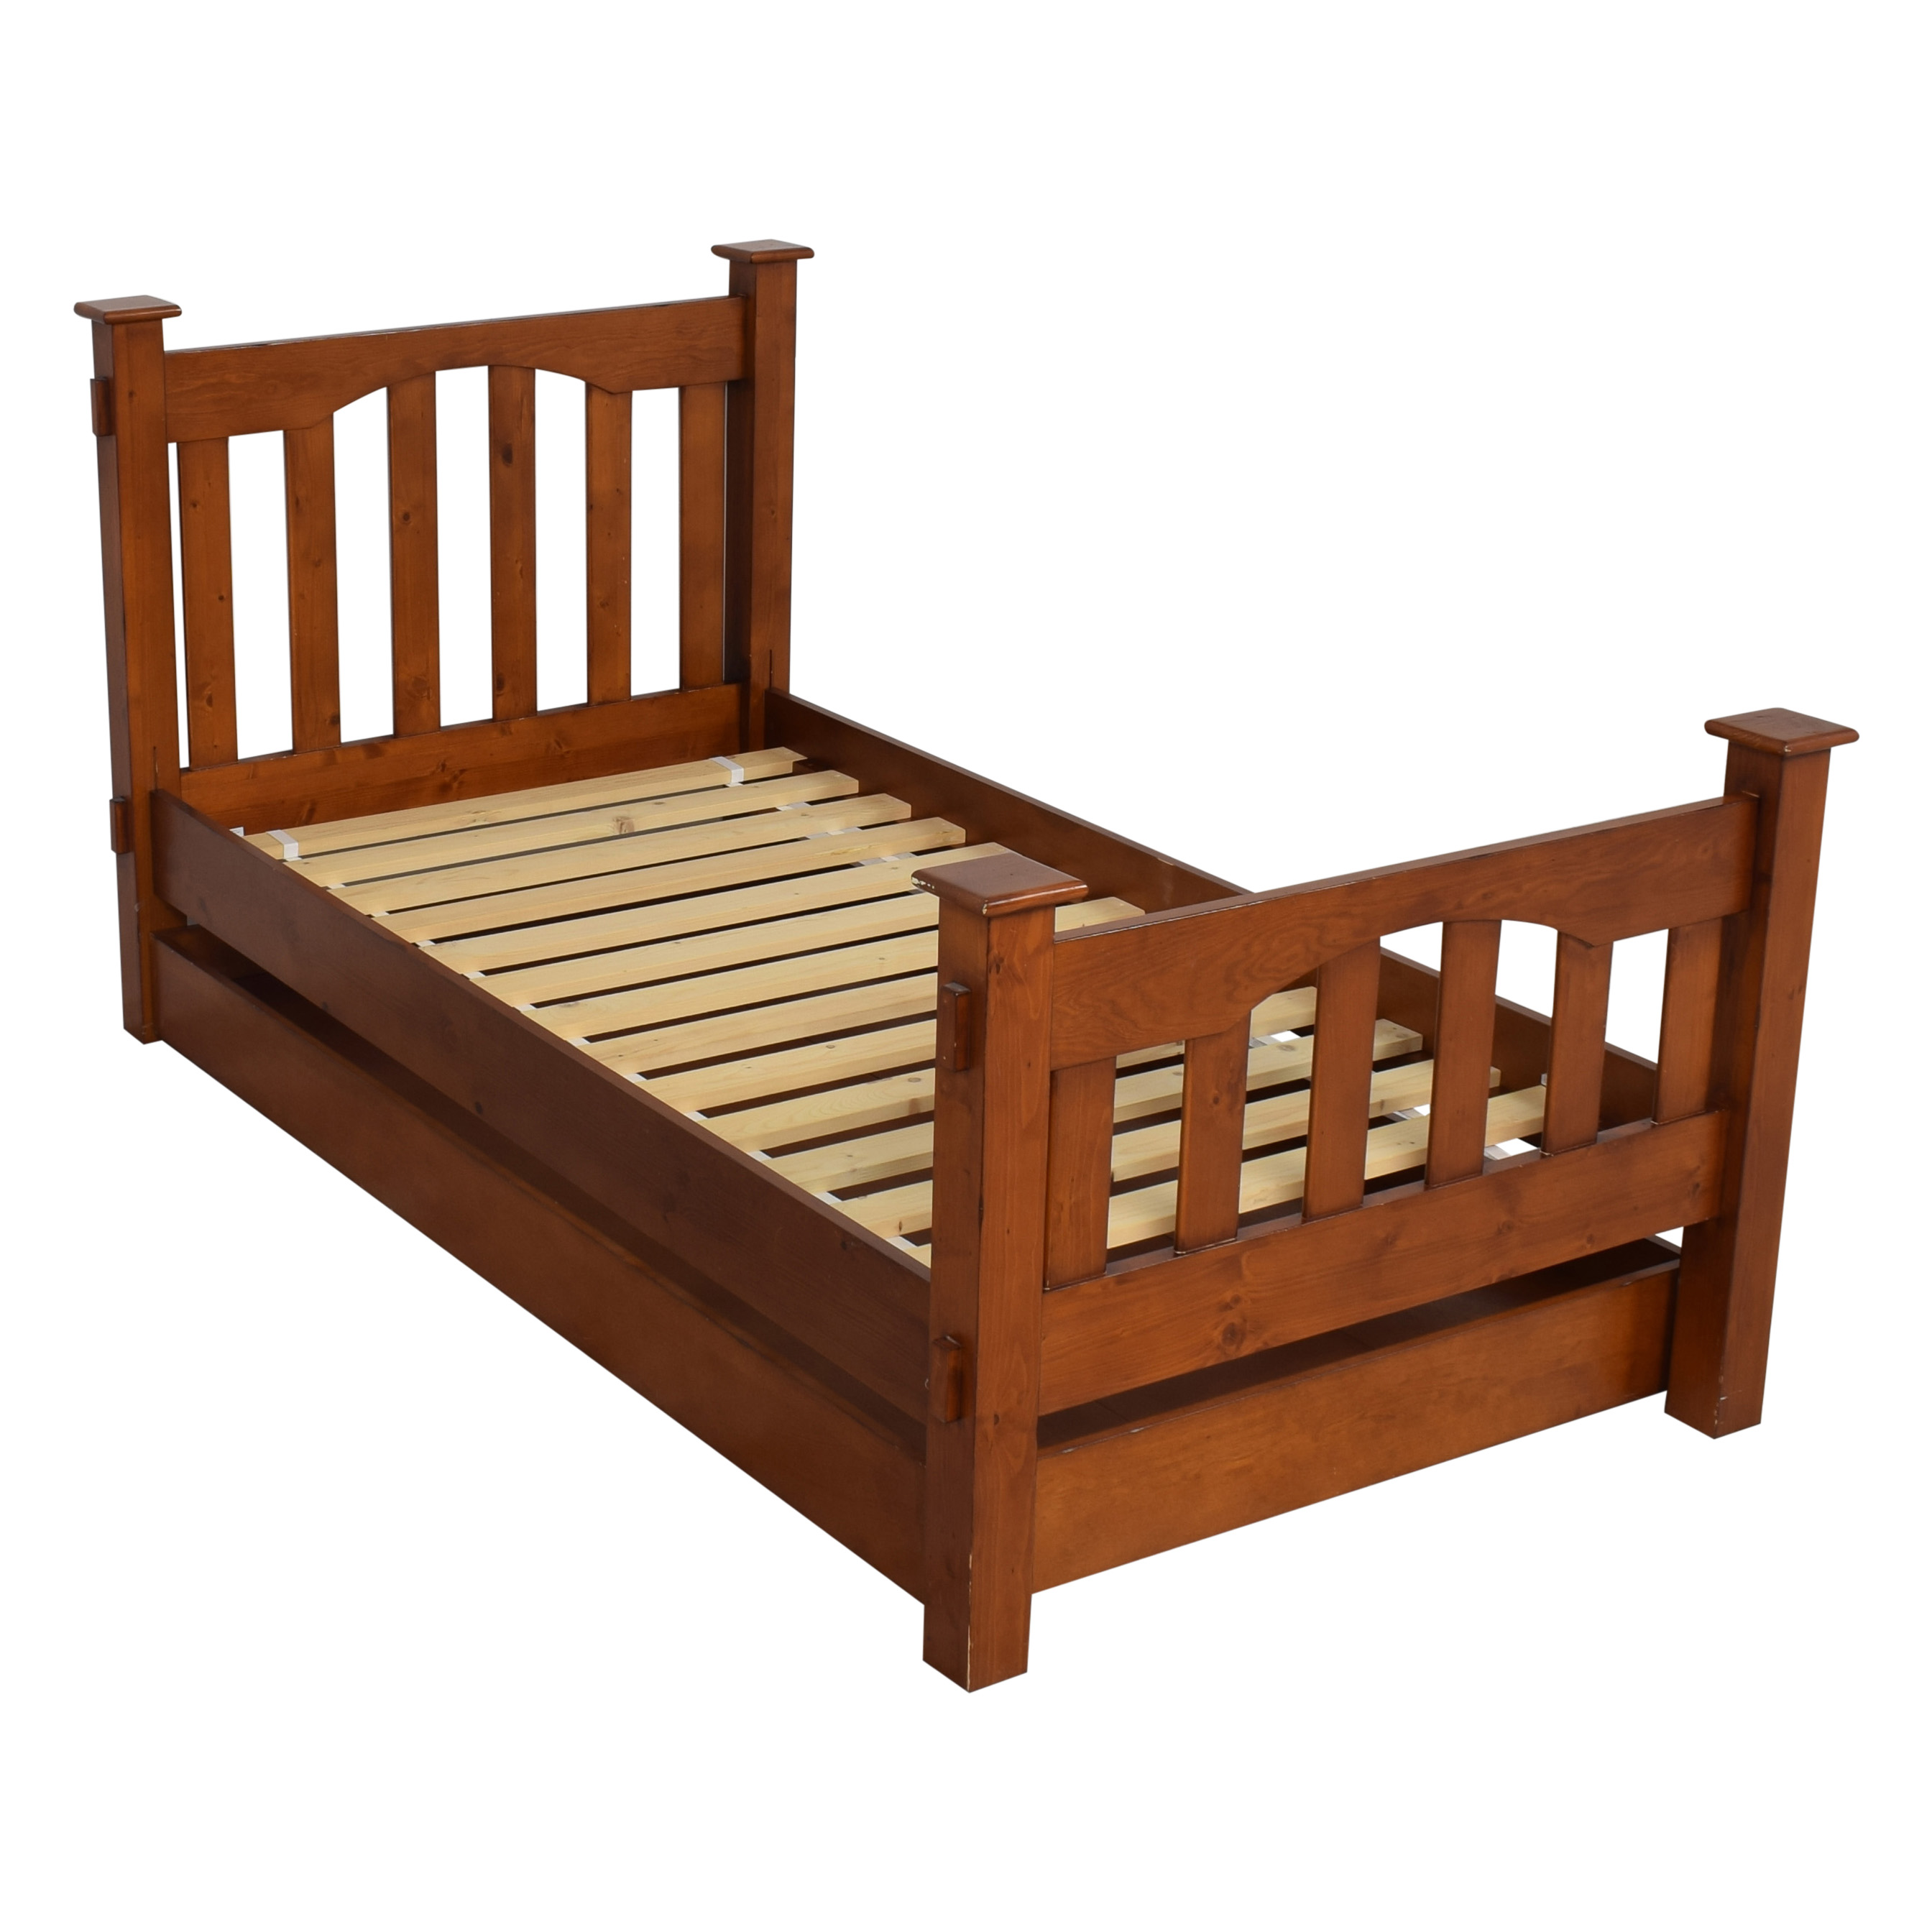 68 Off Pottery Barn Kids Pottery Barn Kids Kendall Twin Trundle Bed Beds